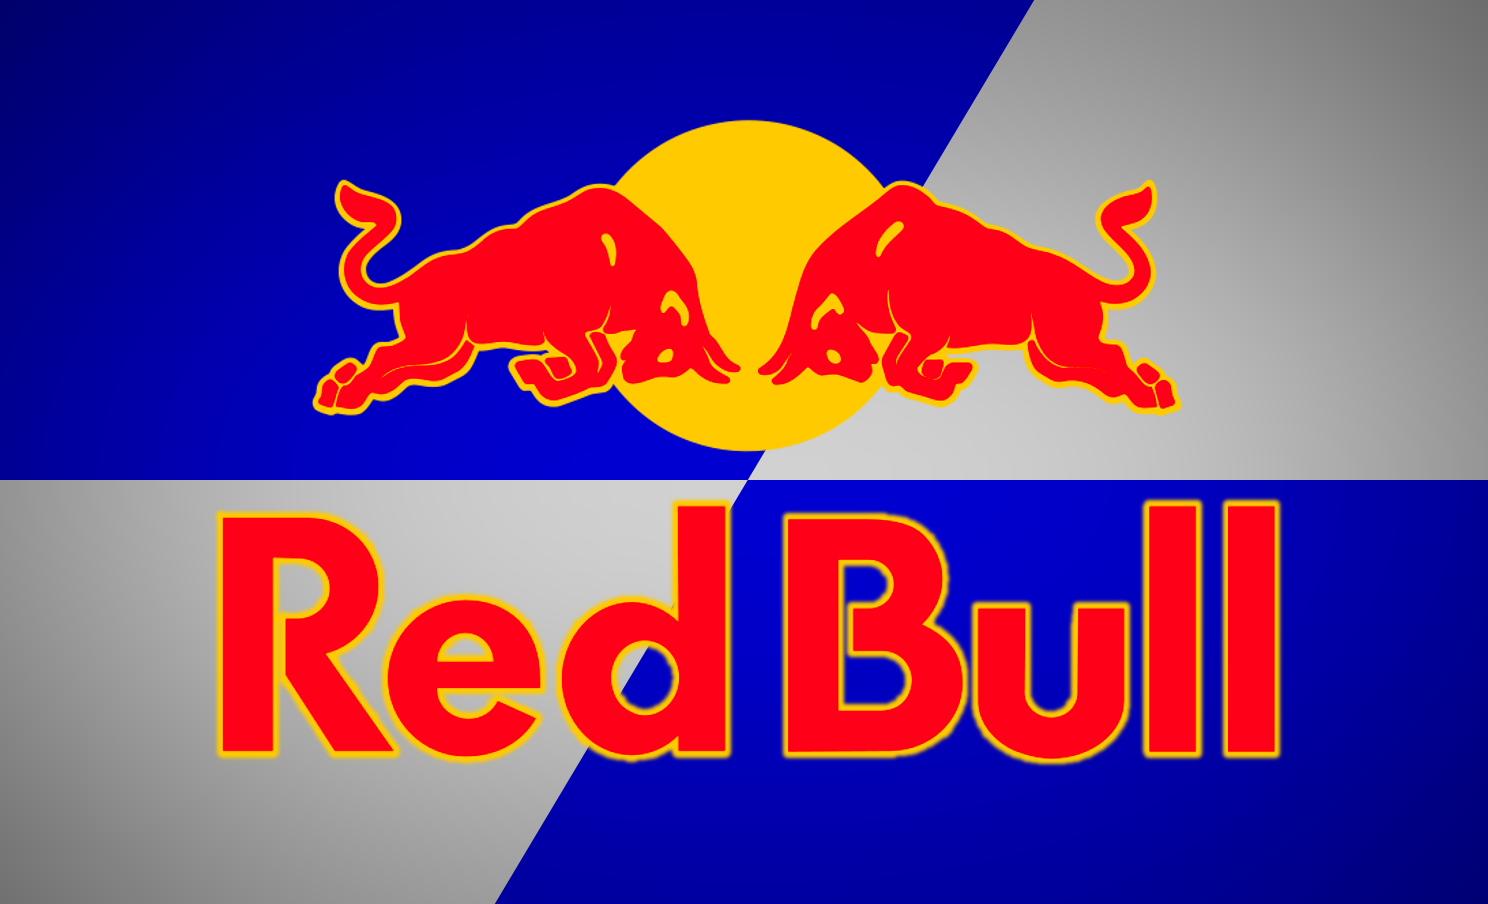 Red Bull Logo Png Hdpng.com 1488 - Red Bull, Transparent background PNG HD thumbnail